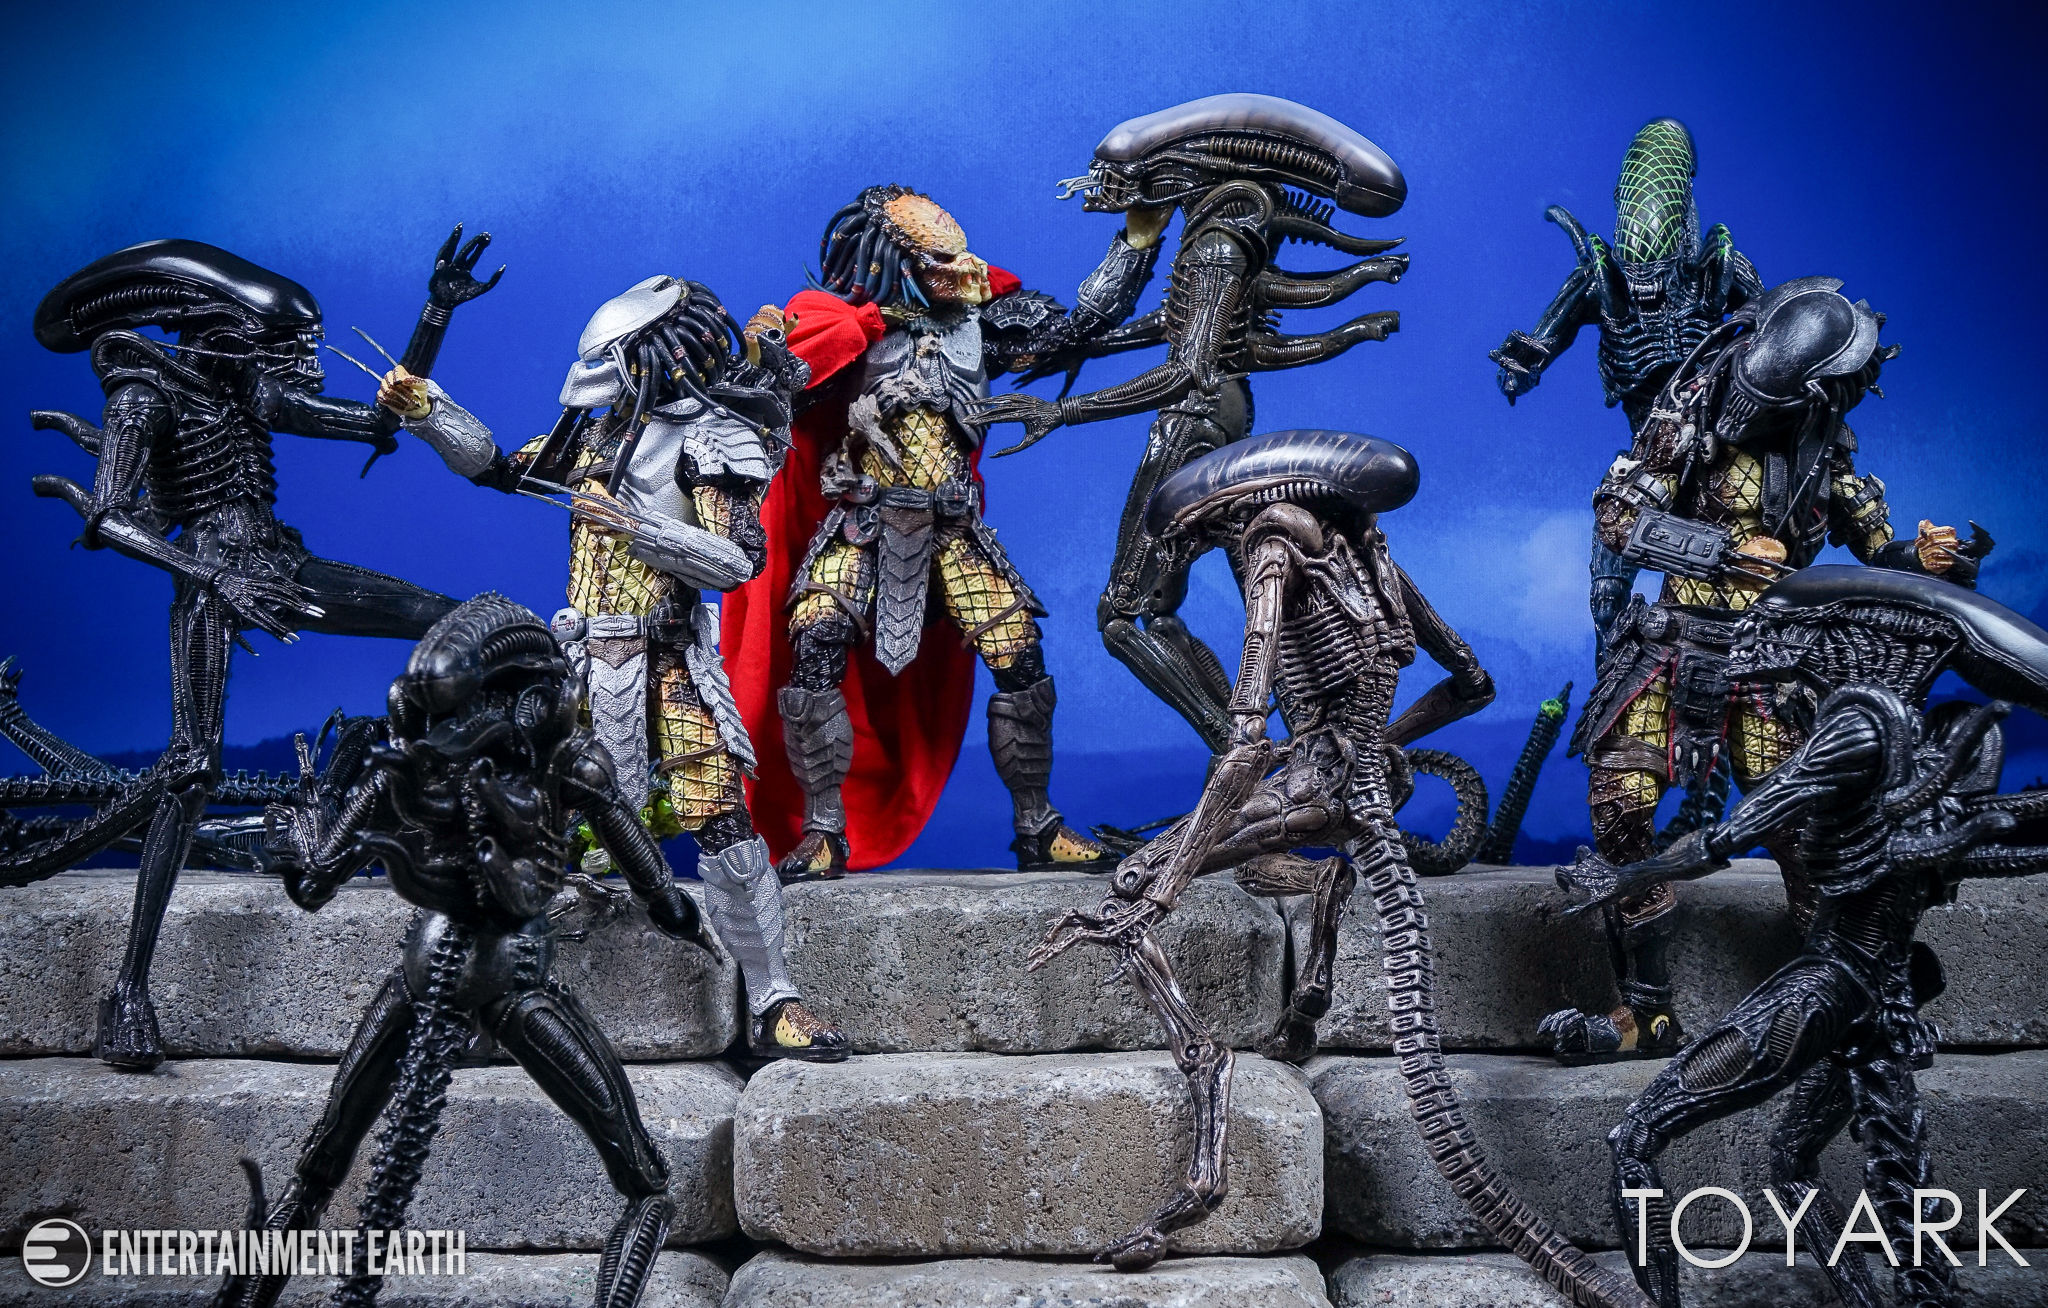 http://news.toyark.com/wp-content/uploads/sites/4/2017/04/NECA-Elder-Predator-042.jpg